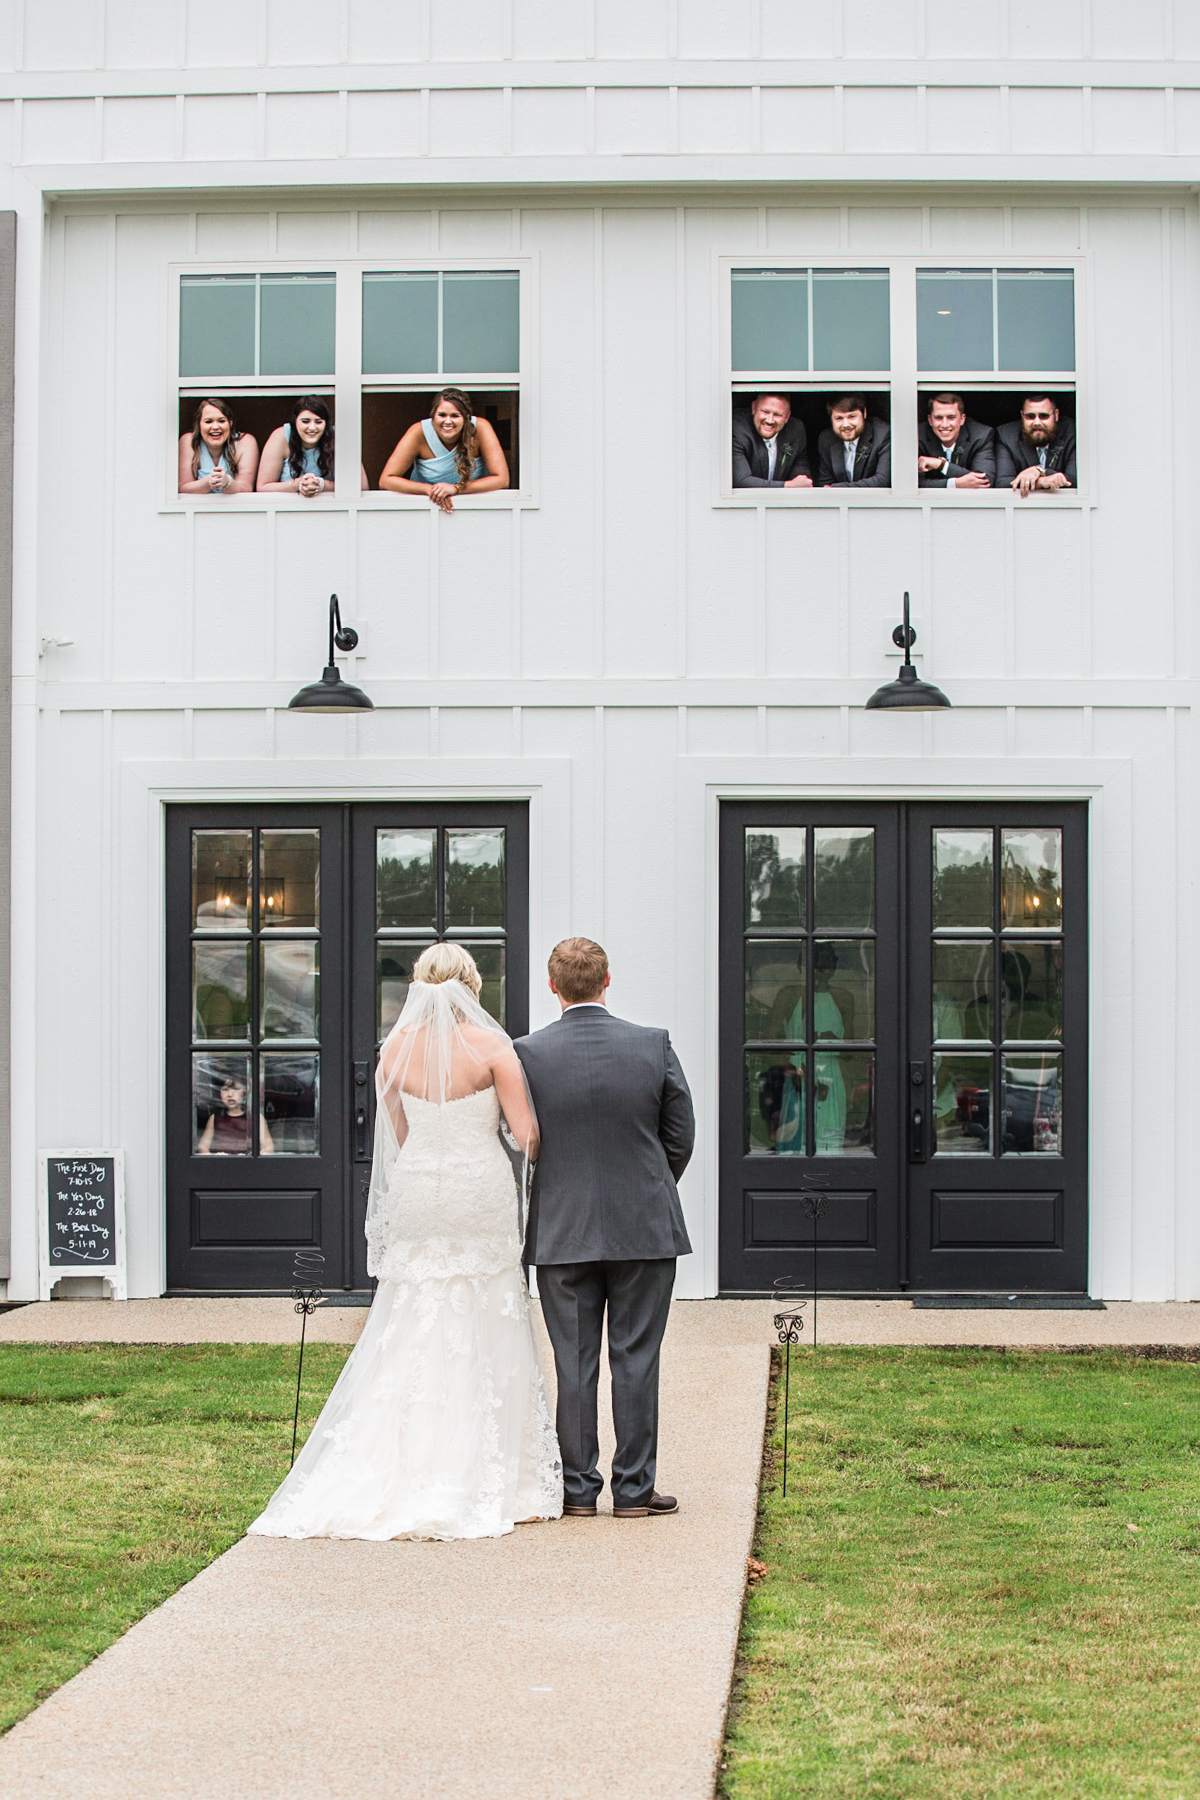 The-venue-at-white-oak-farms-wedding-nashville-wedding-photographers-0177.jpg